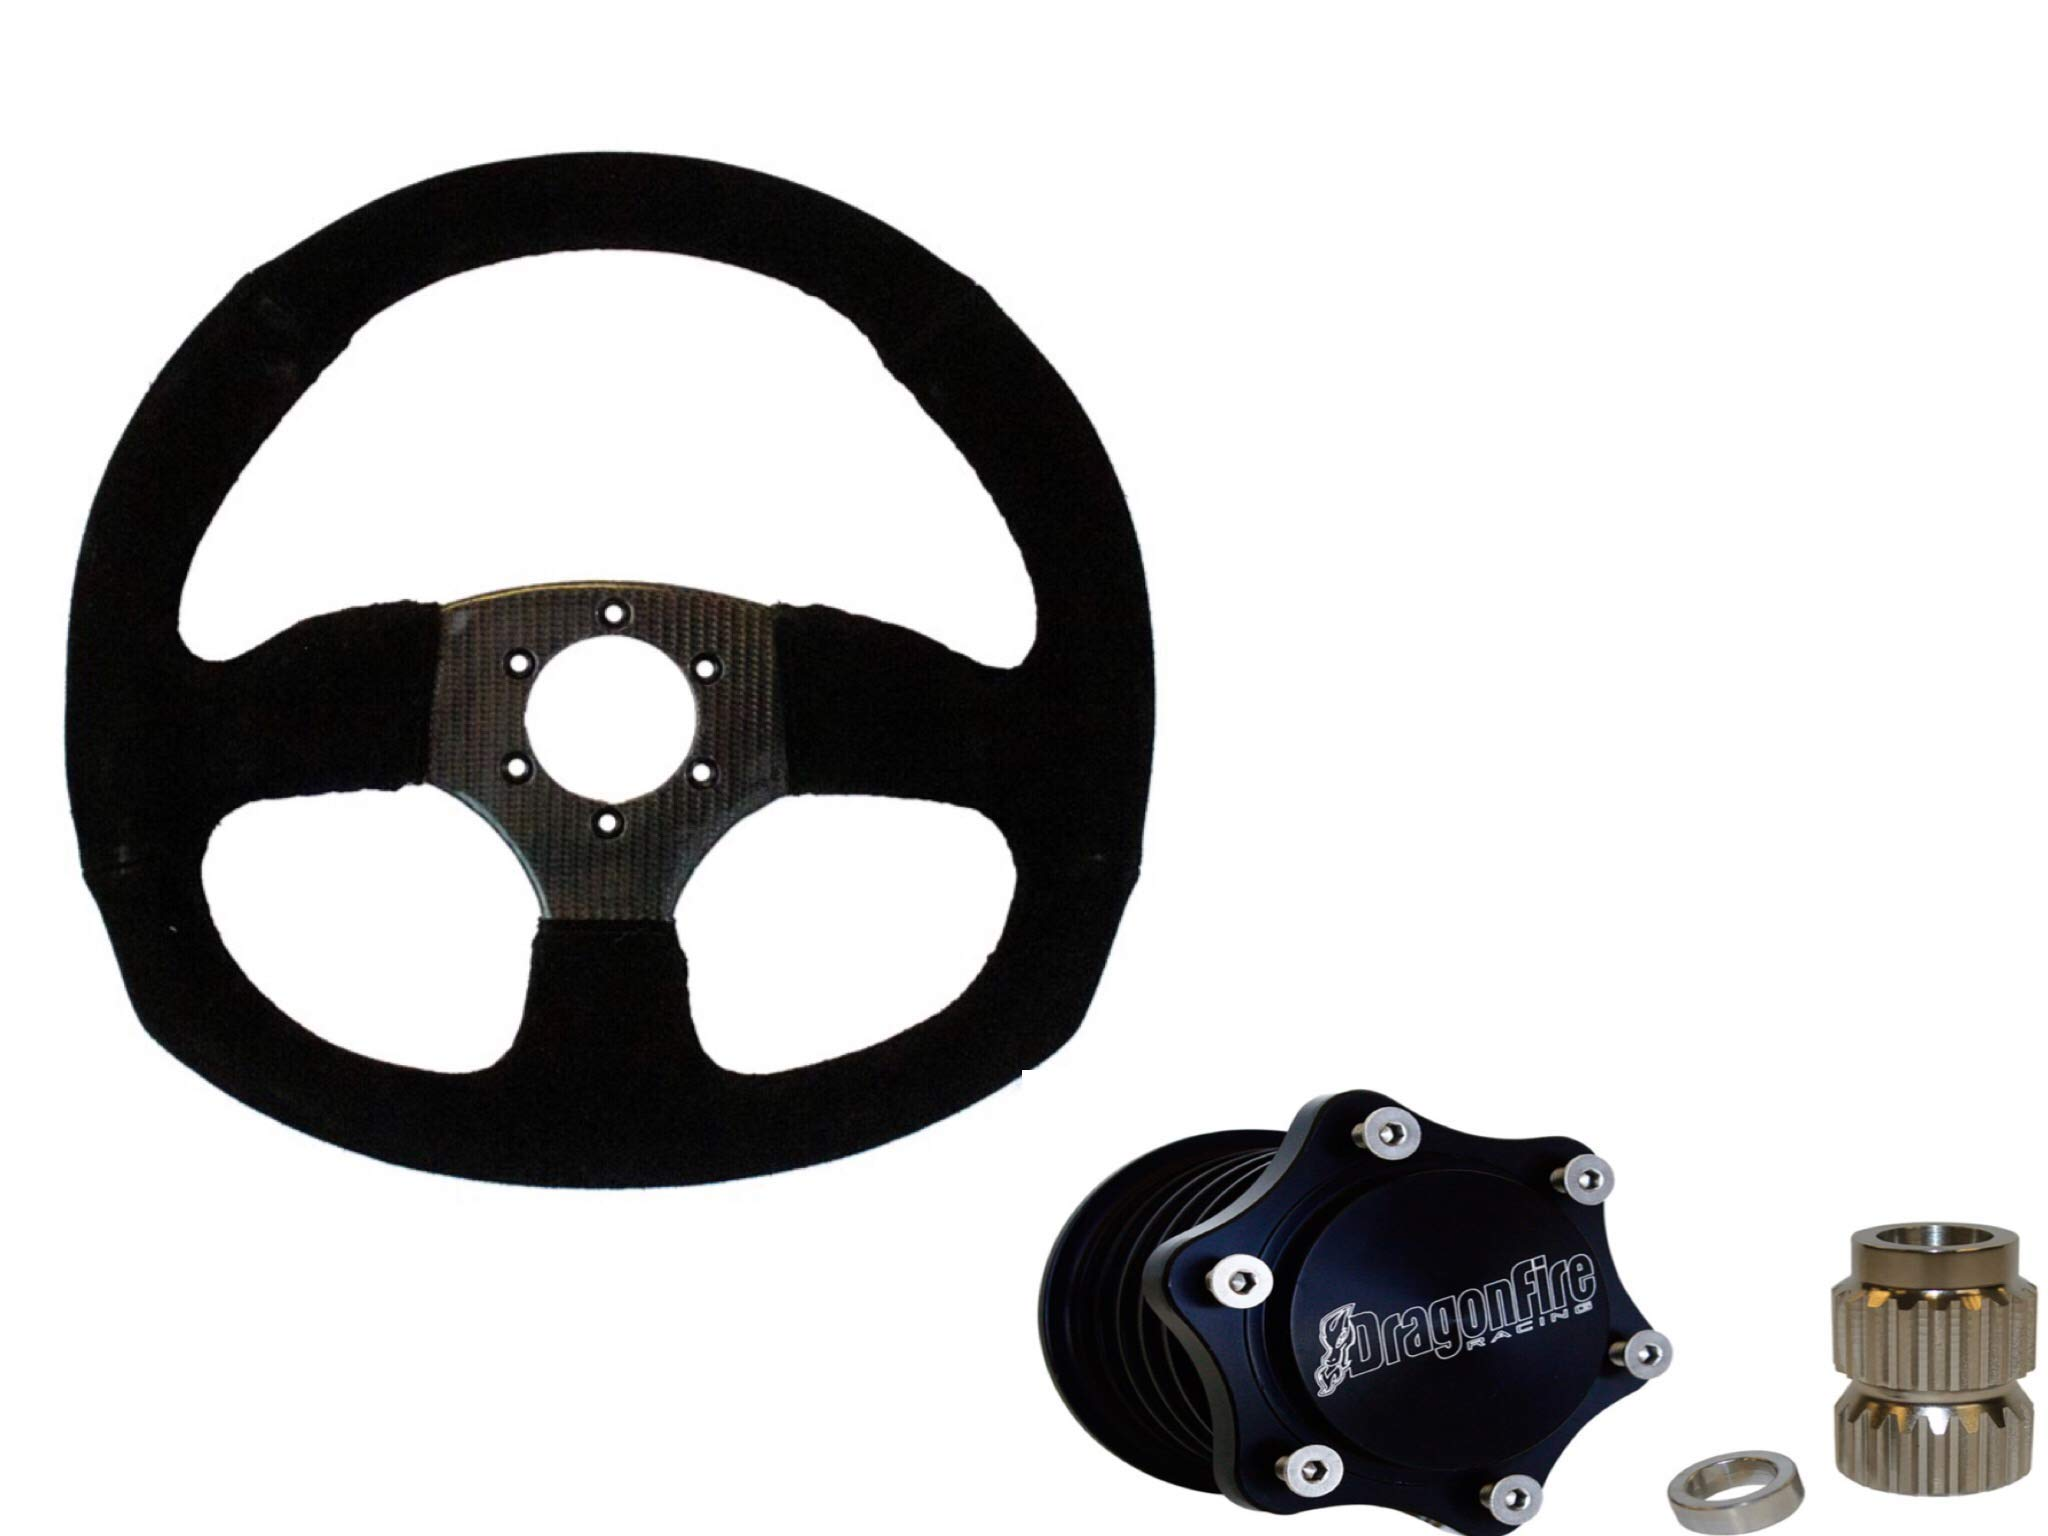 Dragonfire Racing Carbon Fiber D Quick-Release Steering Wheel Kit for Can-Am Maverick X3 2017-2019